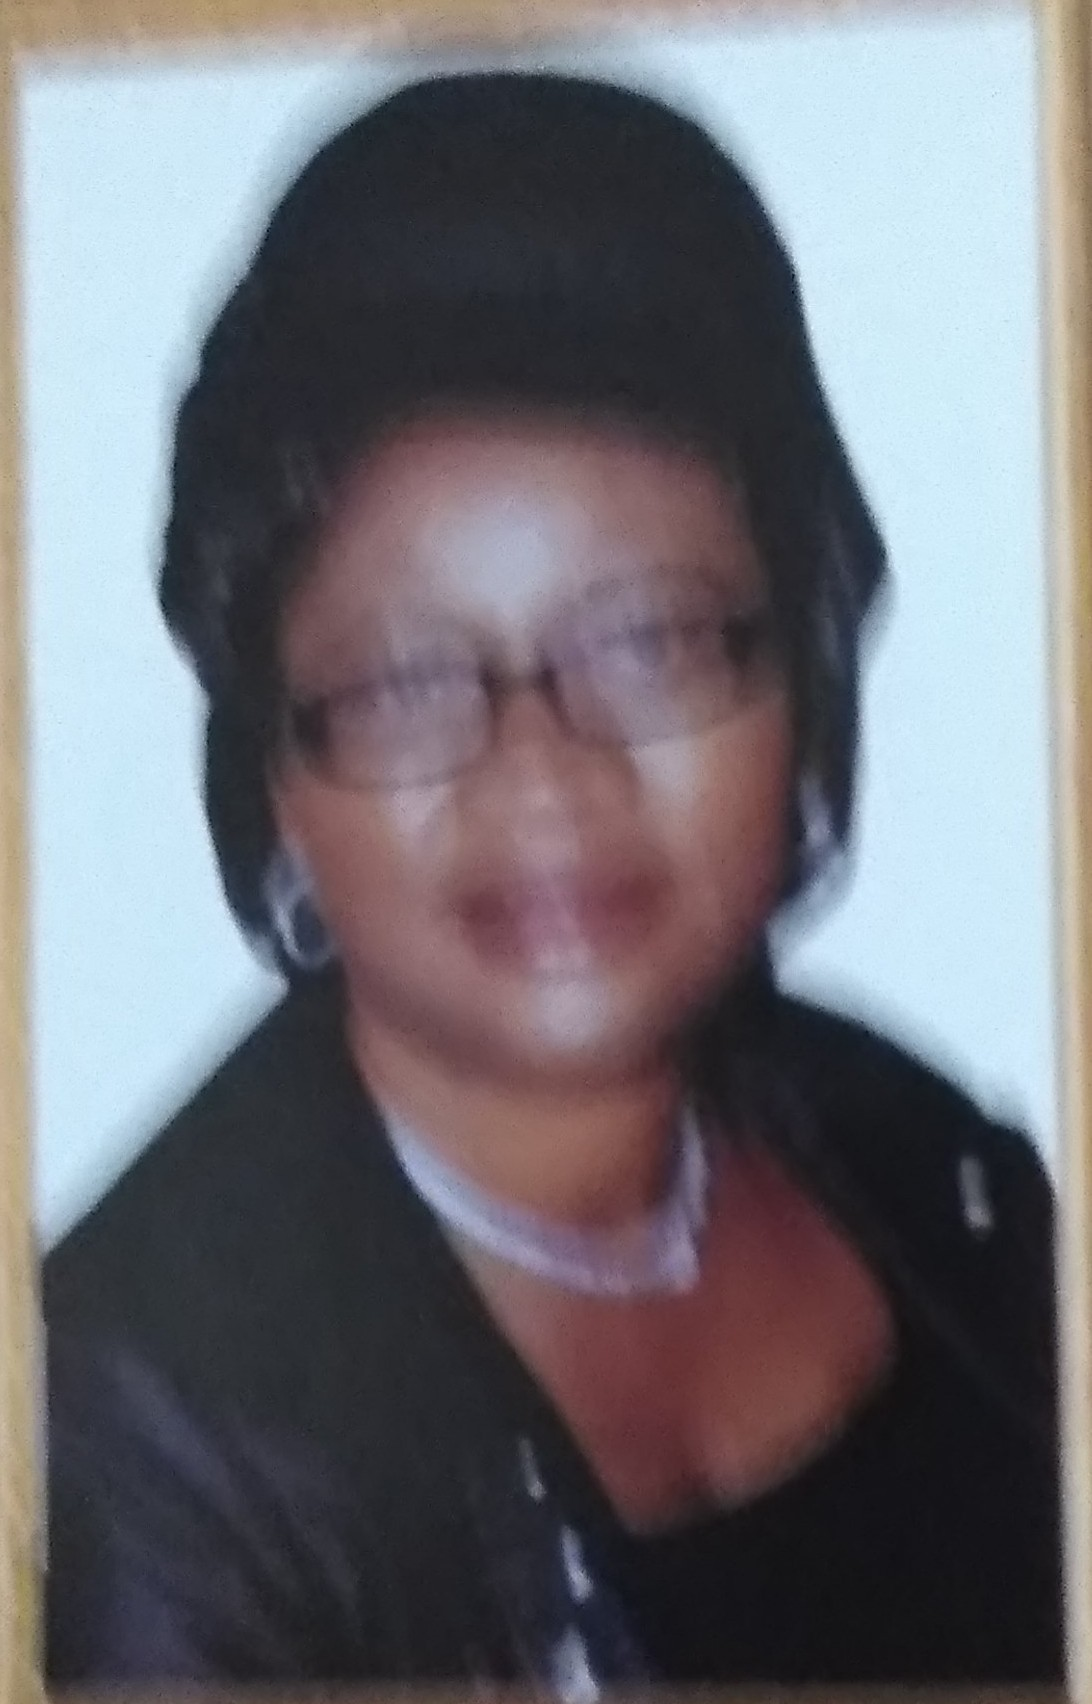 Justice Rosemary Onome Dugbo-Oghoghorie